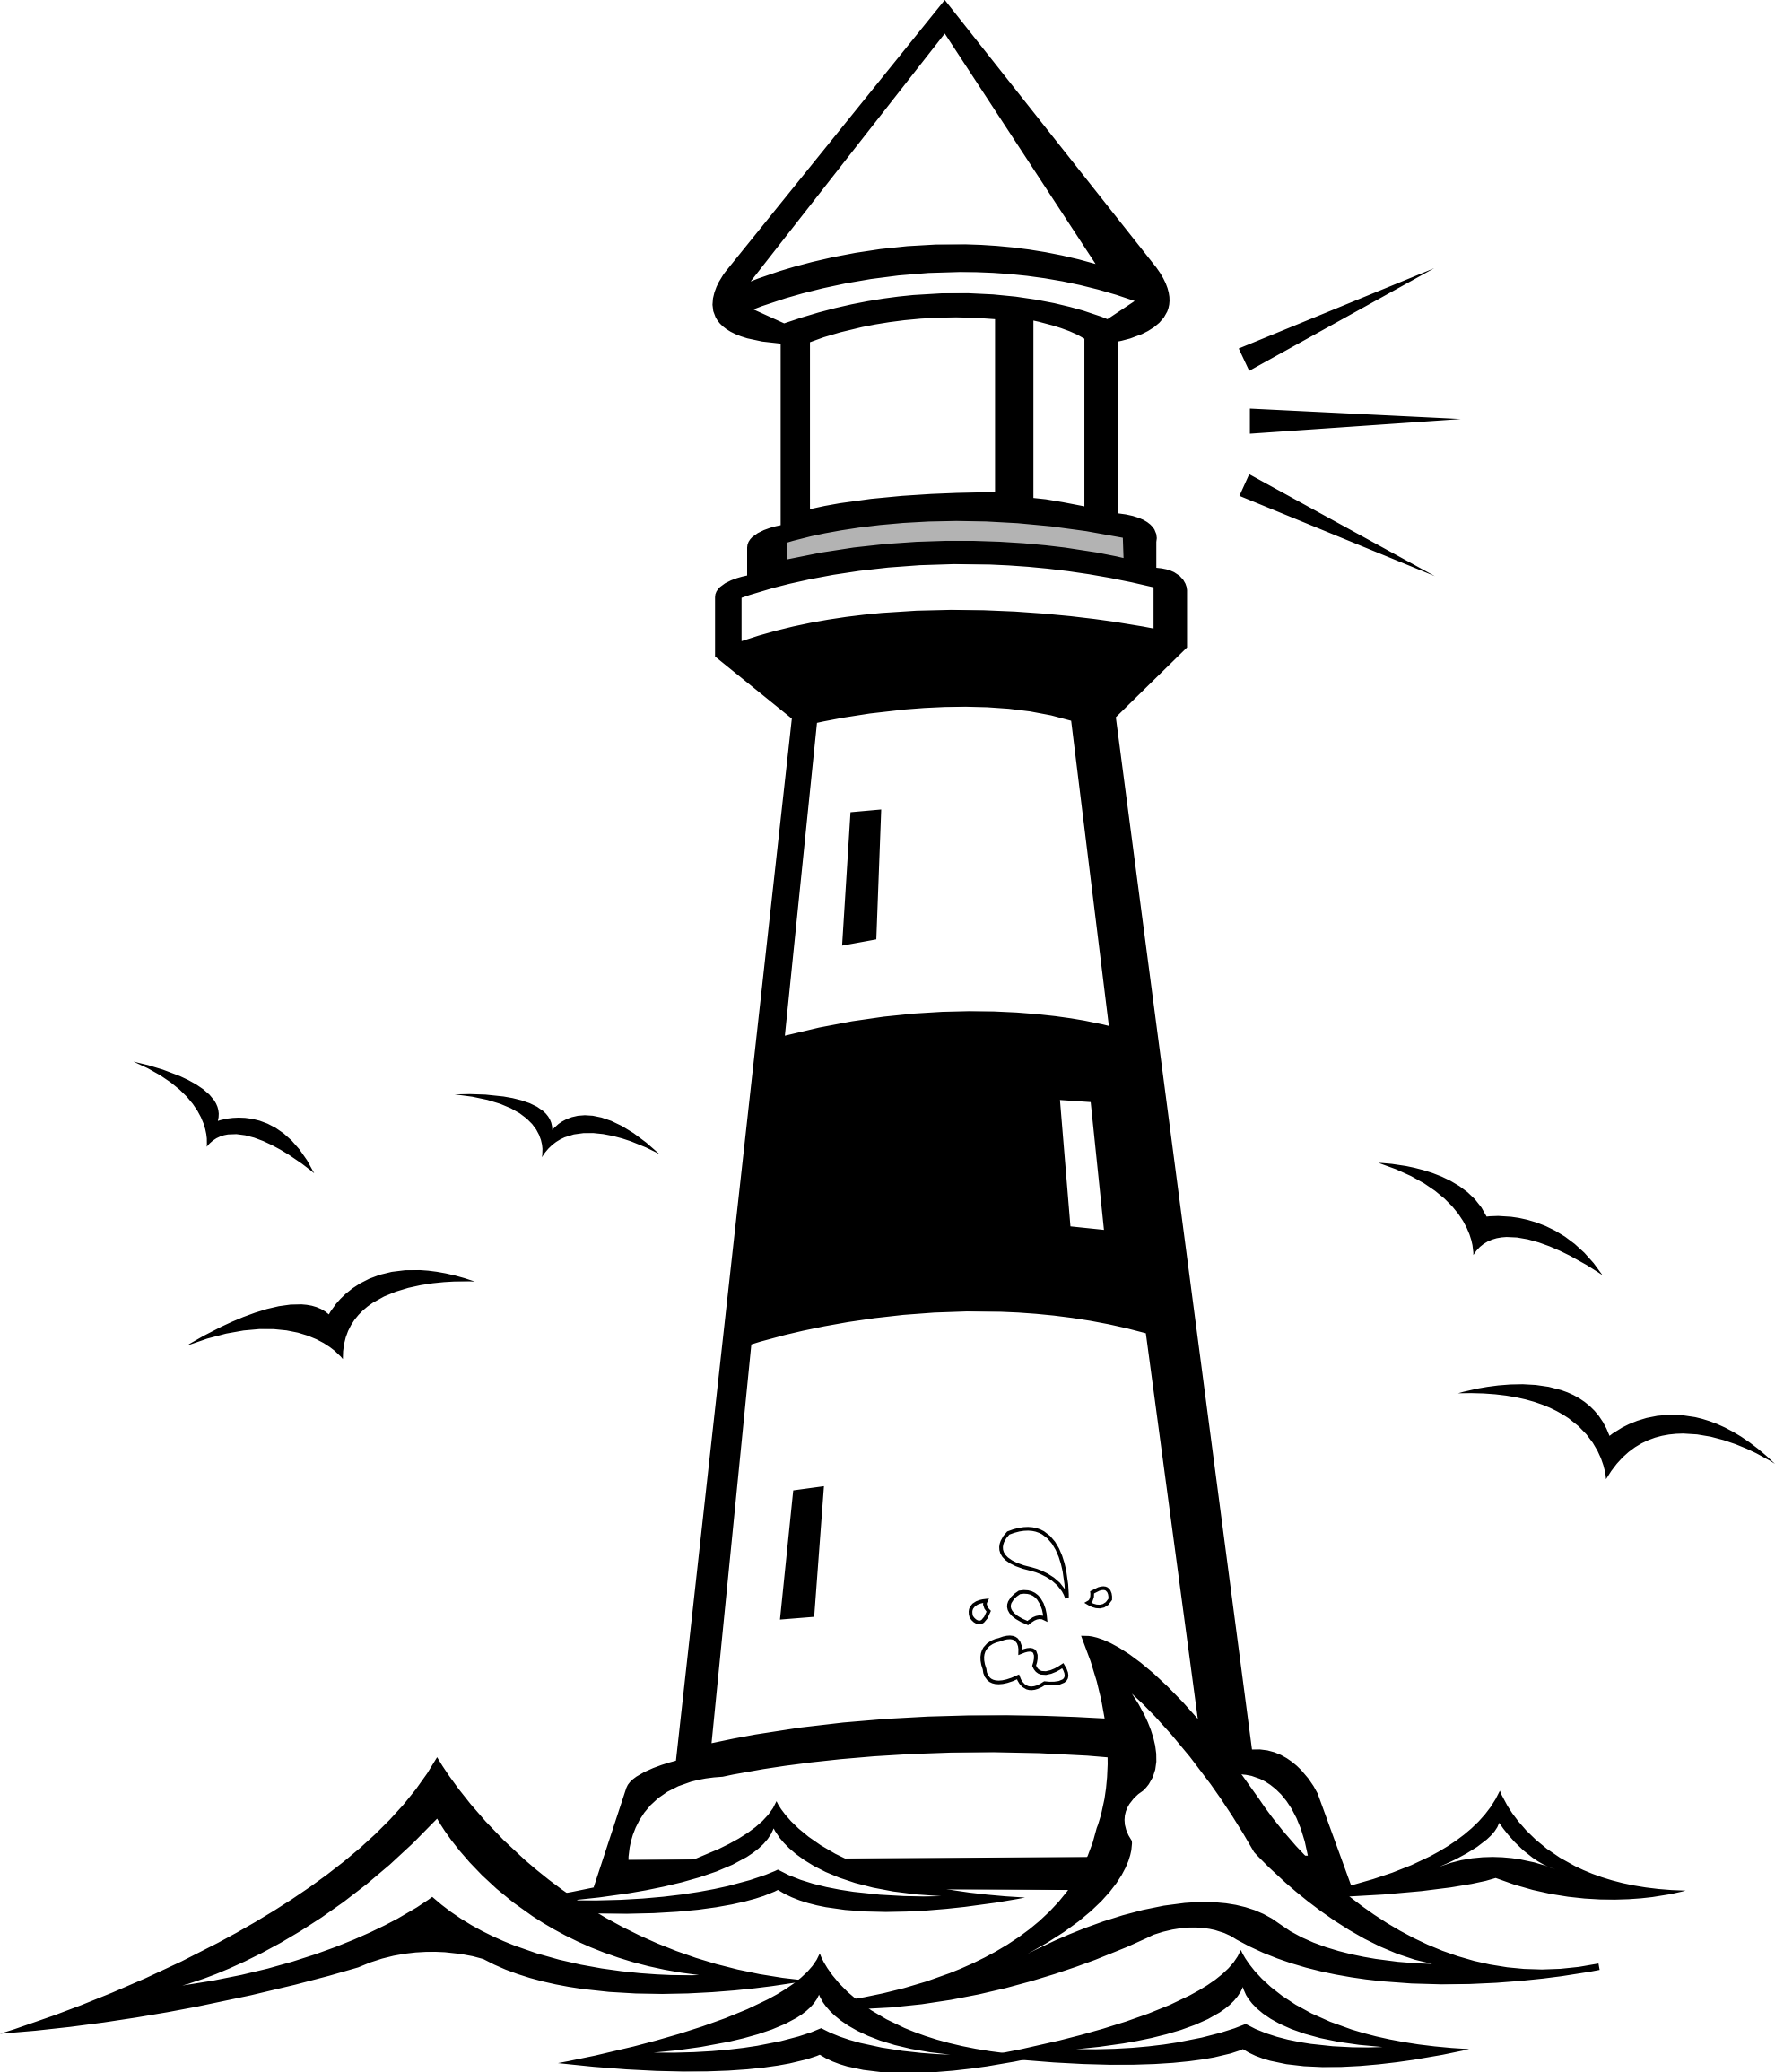 Lighthouse panda free images. Energy clipart black and white